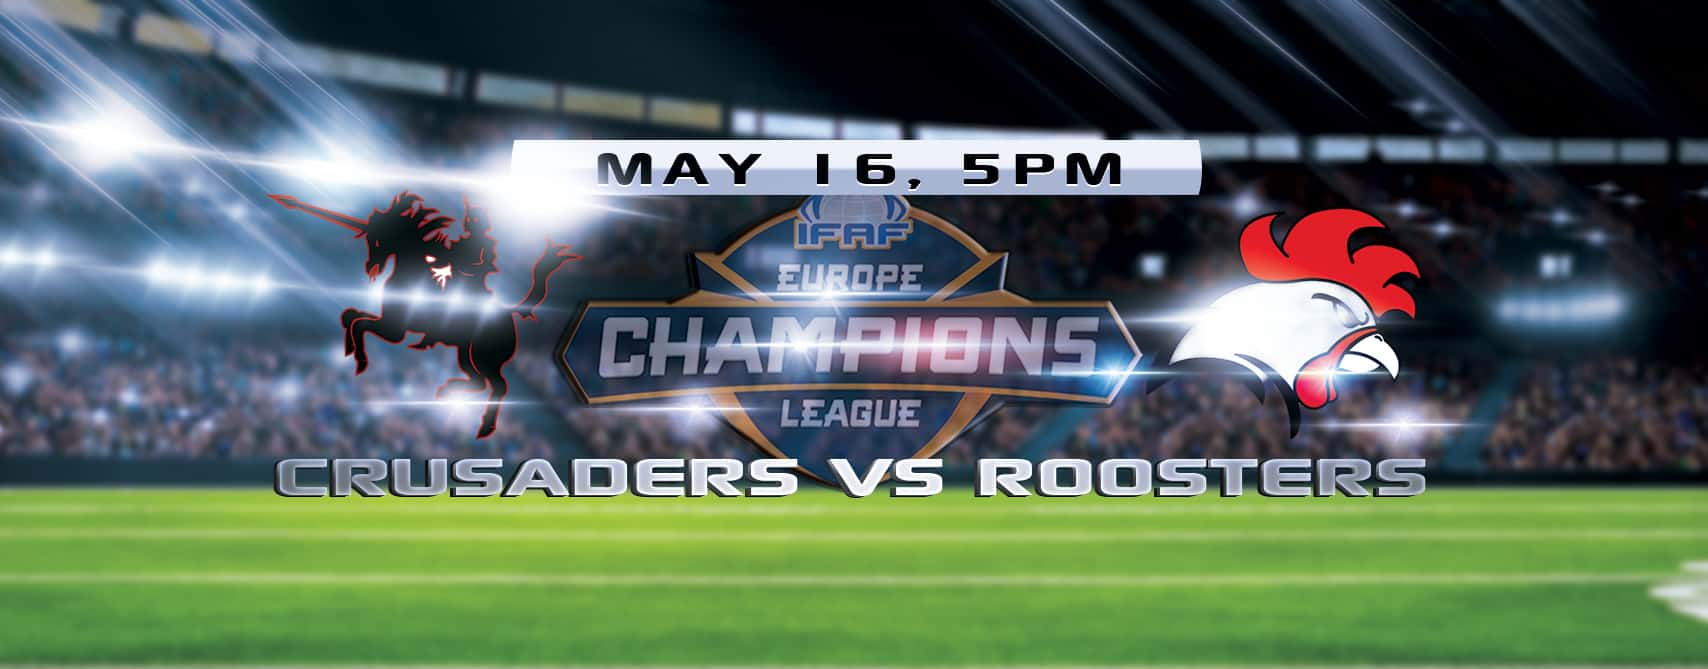 event-crusaders-roosters